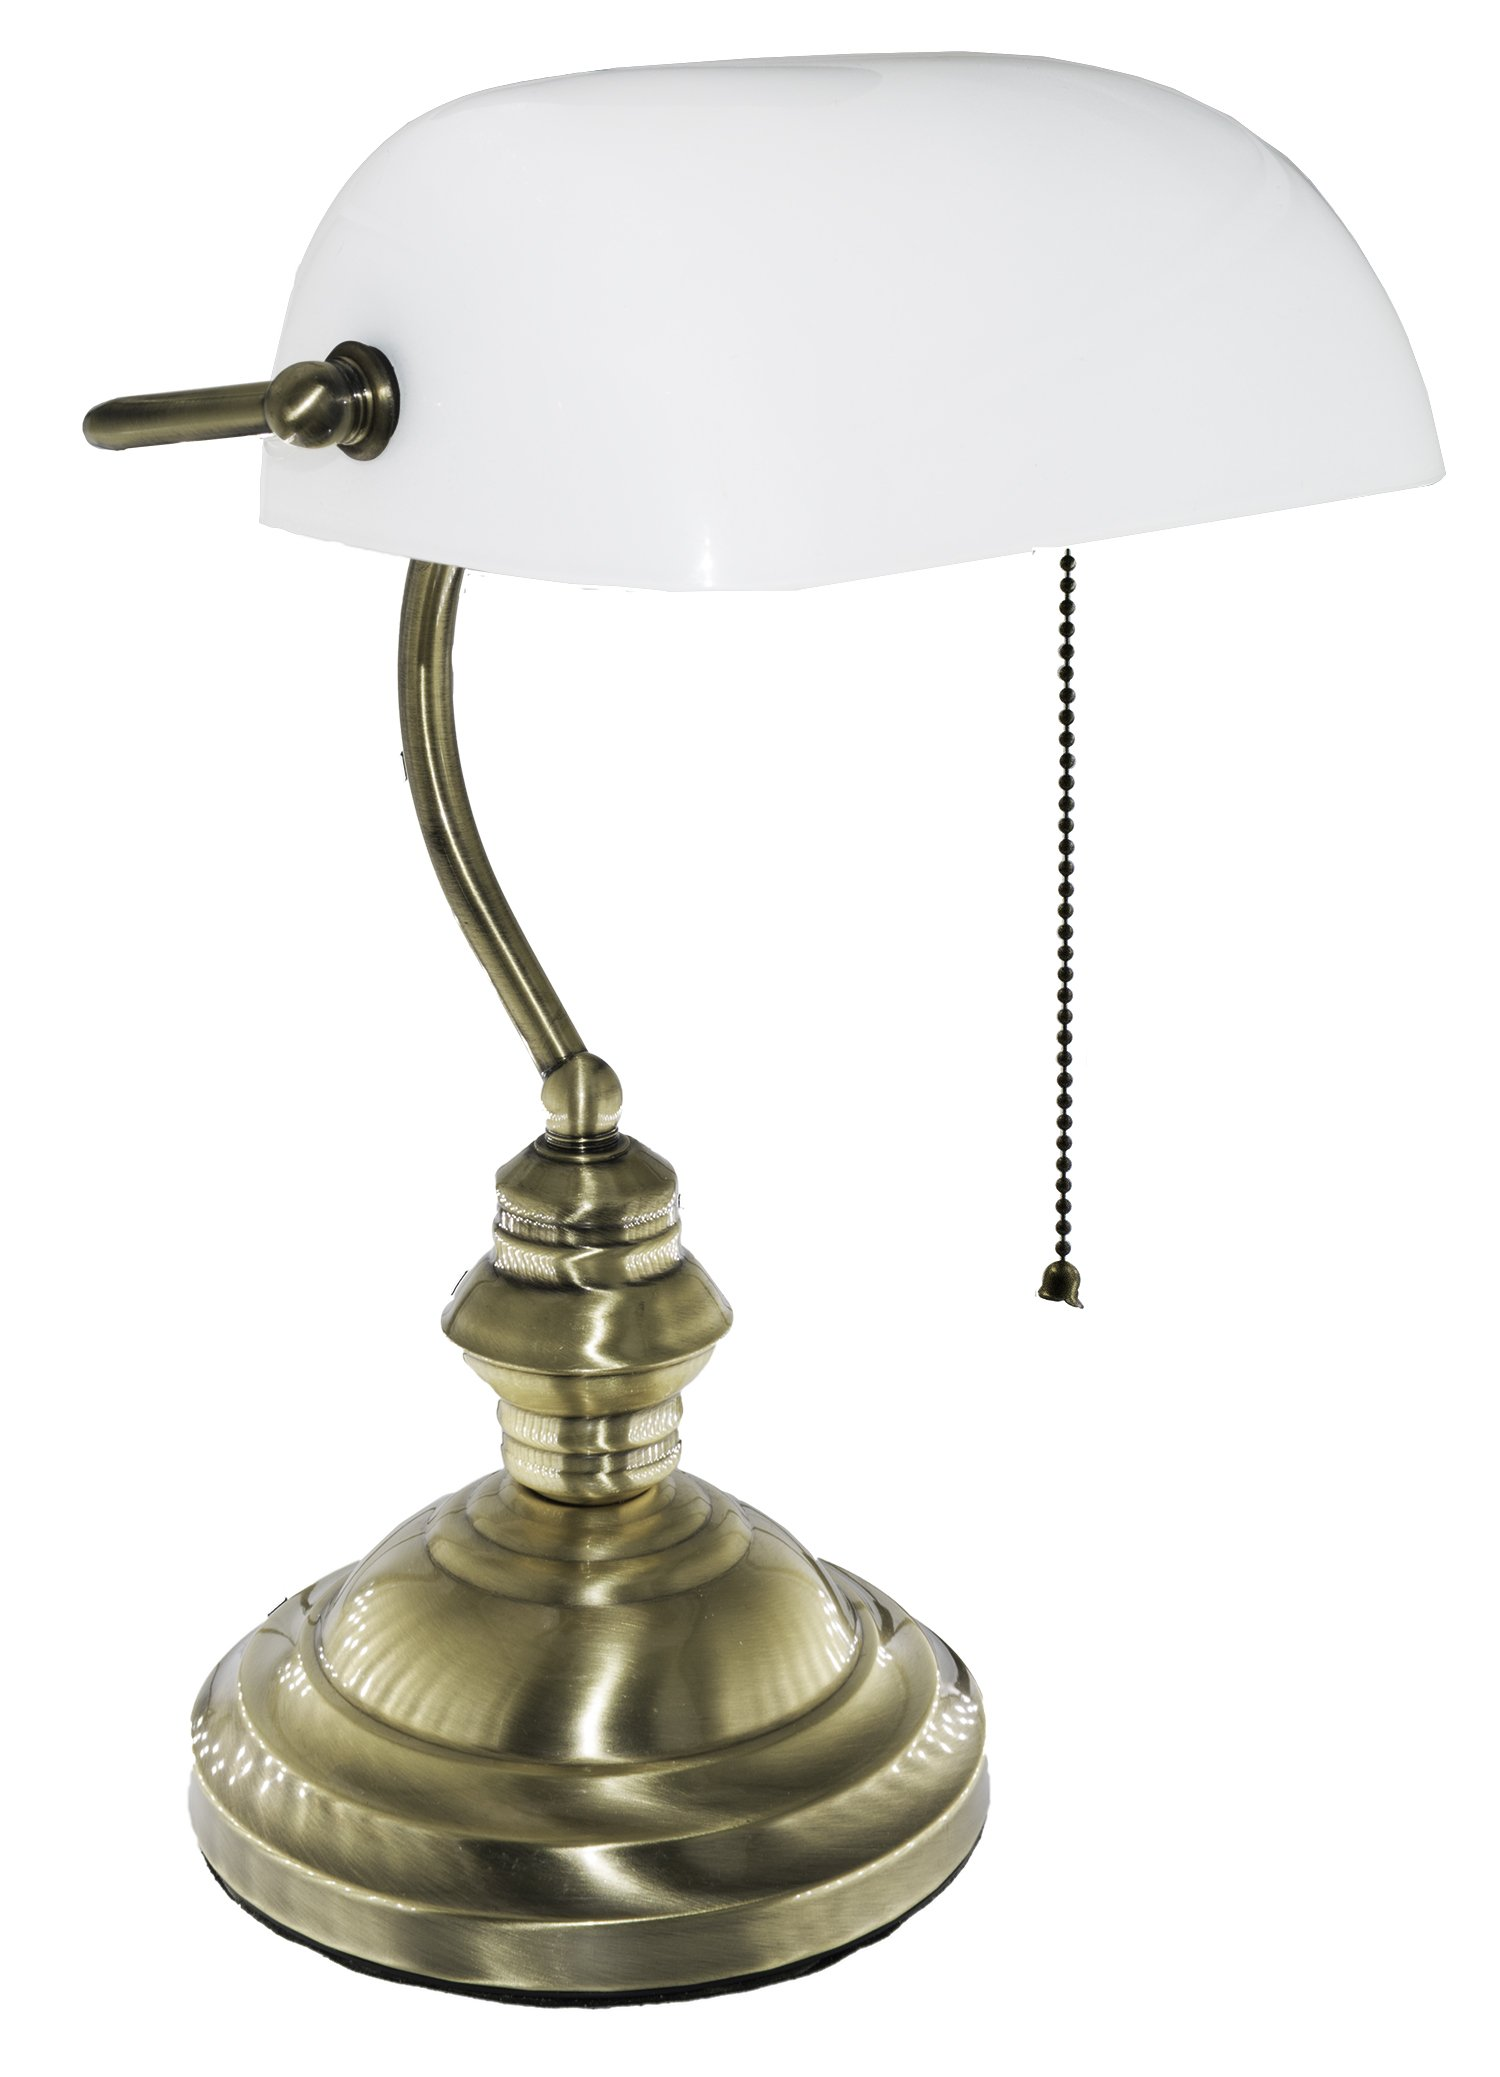 RUDY Bankers Desk Lamp 15''H, White Glass Shade with Brushed Gold Finish Brass Base by RUDY (Image #1)